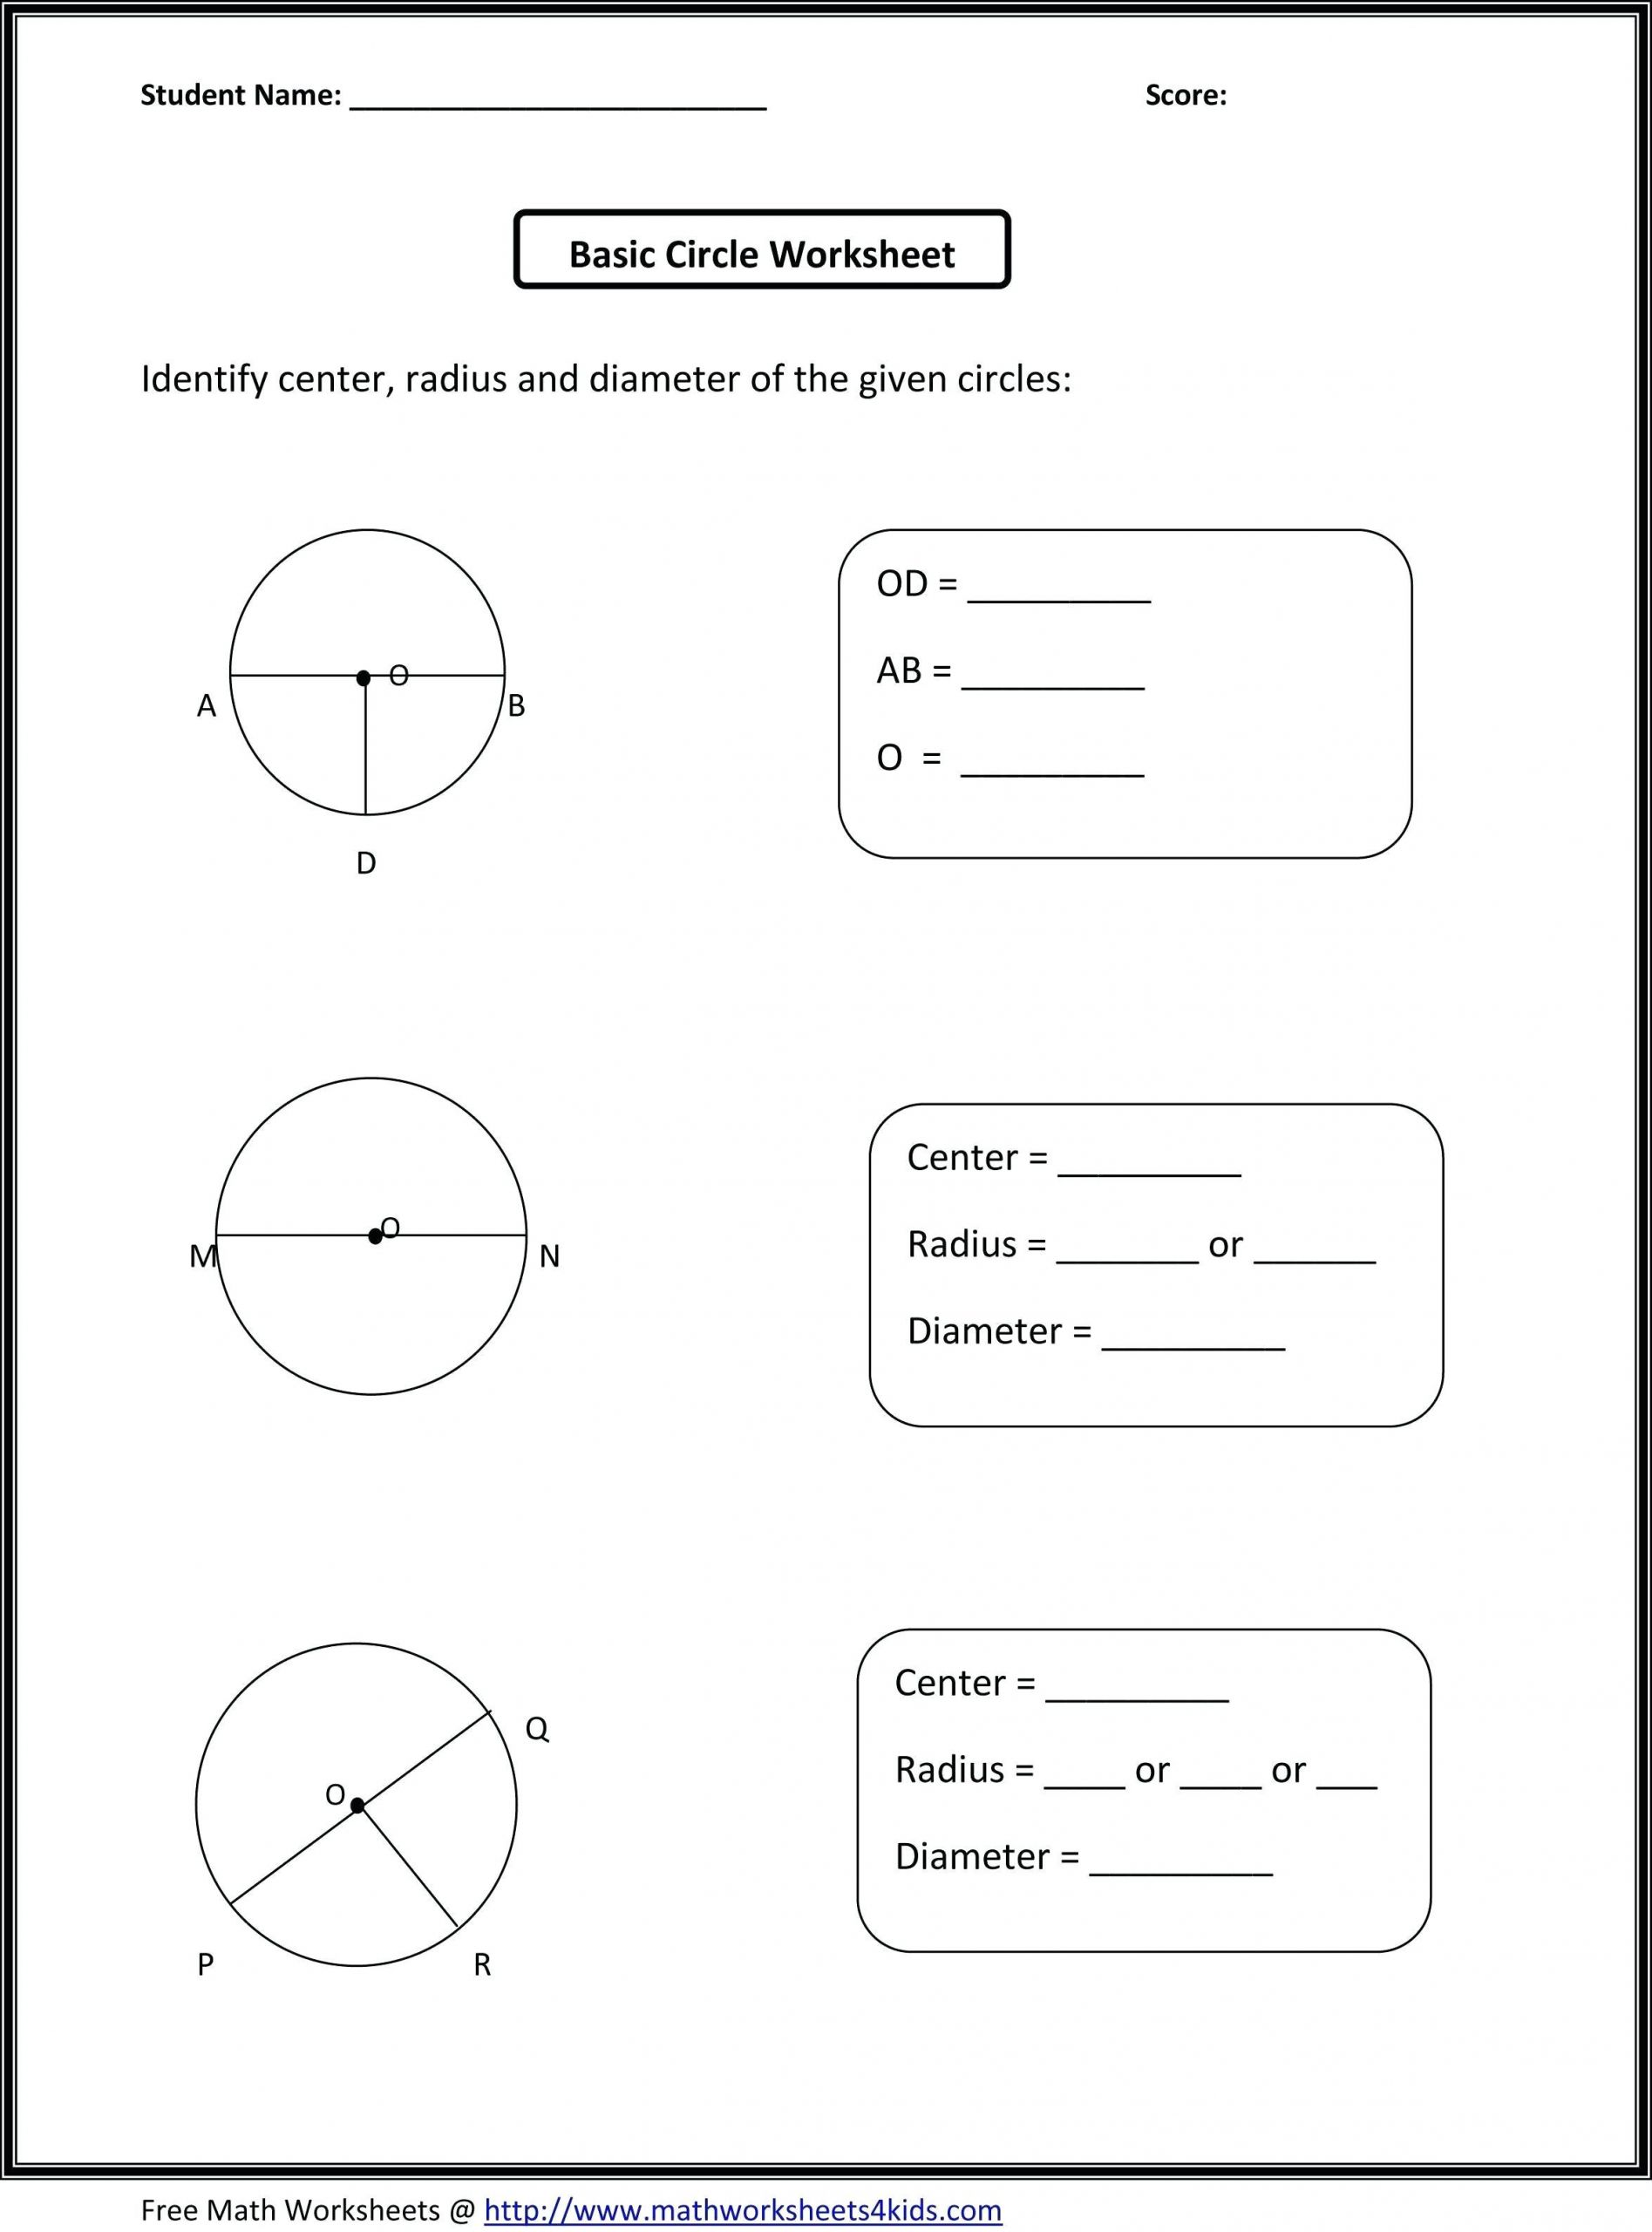 hight resolution of 3 Free Math Worksheets Second Grade 2 Subtraction Subtracting 1 Digit From  2 Digit with Regrouping - apocalomegaproductions.com